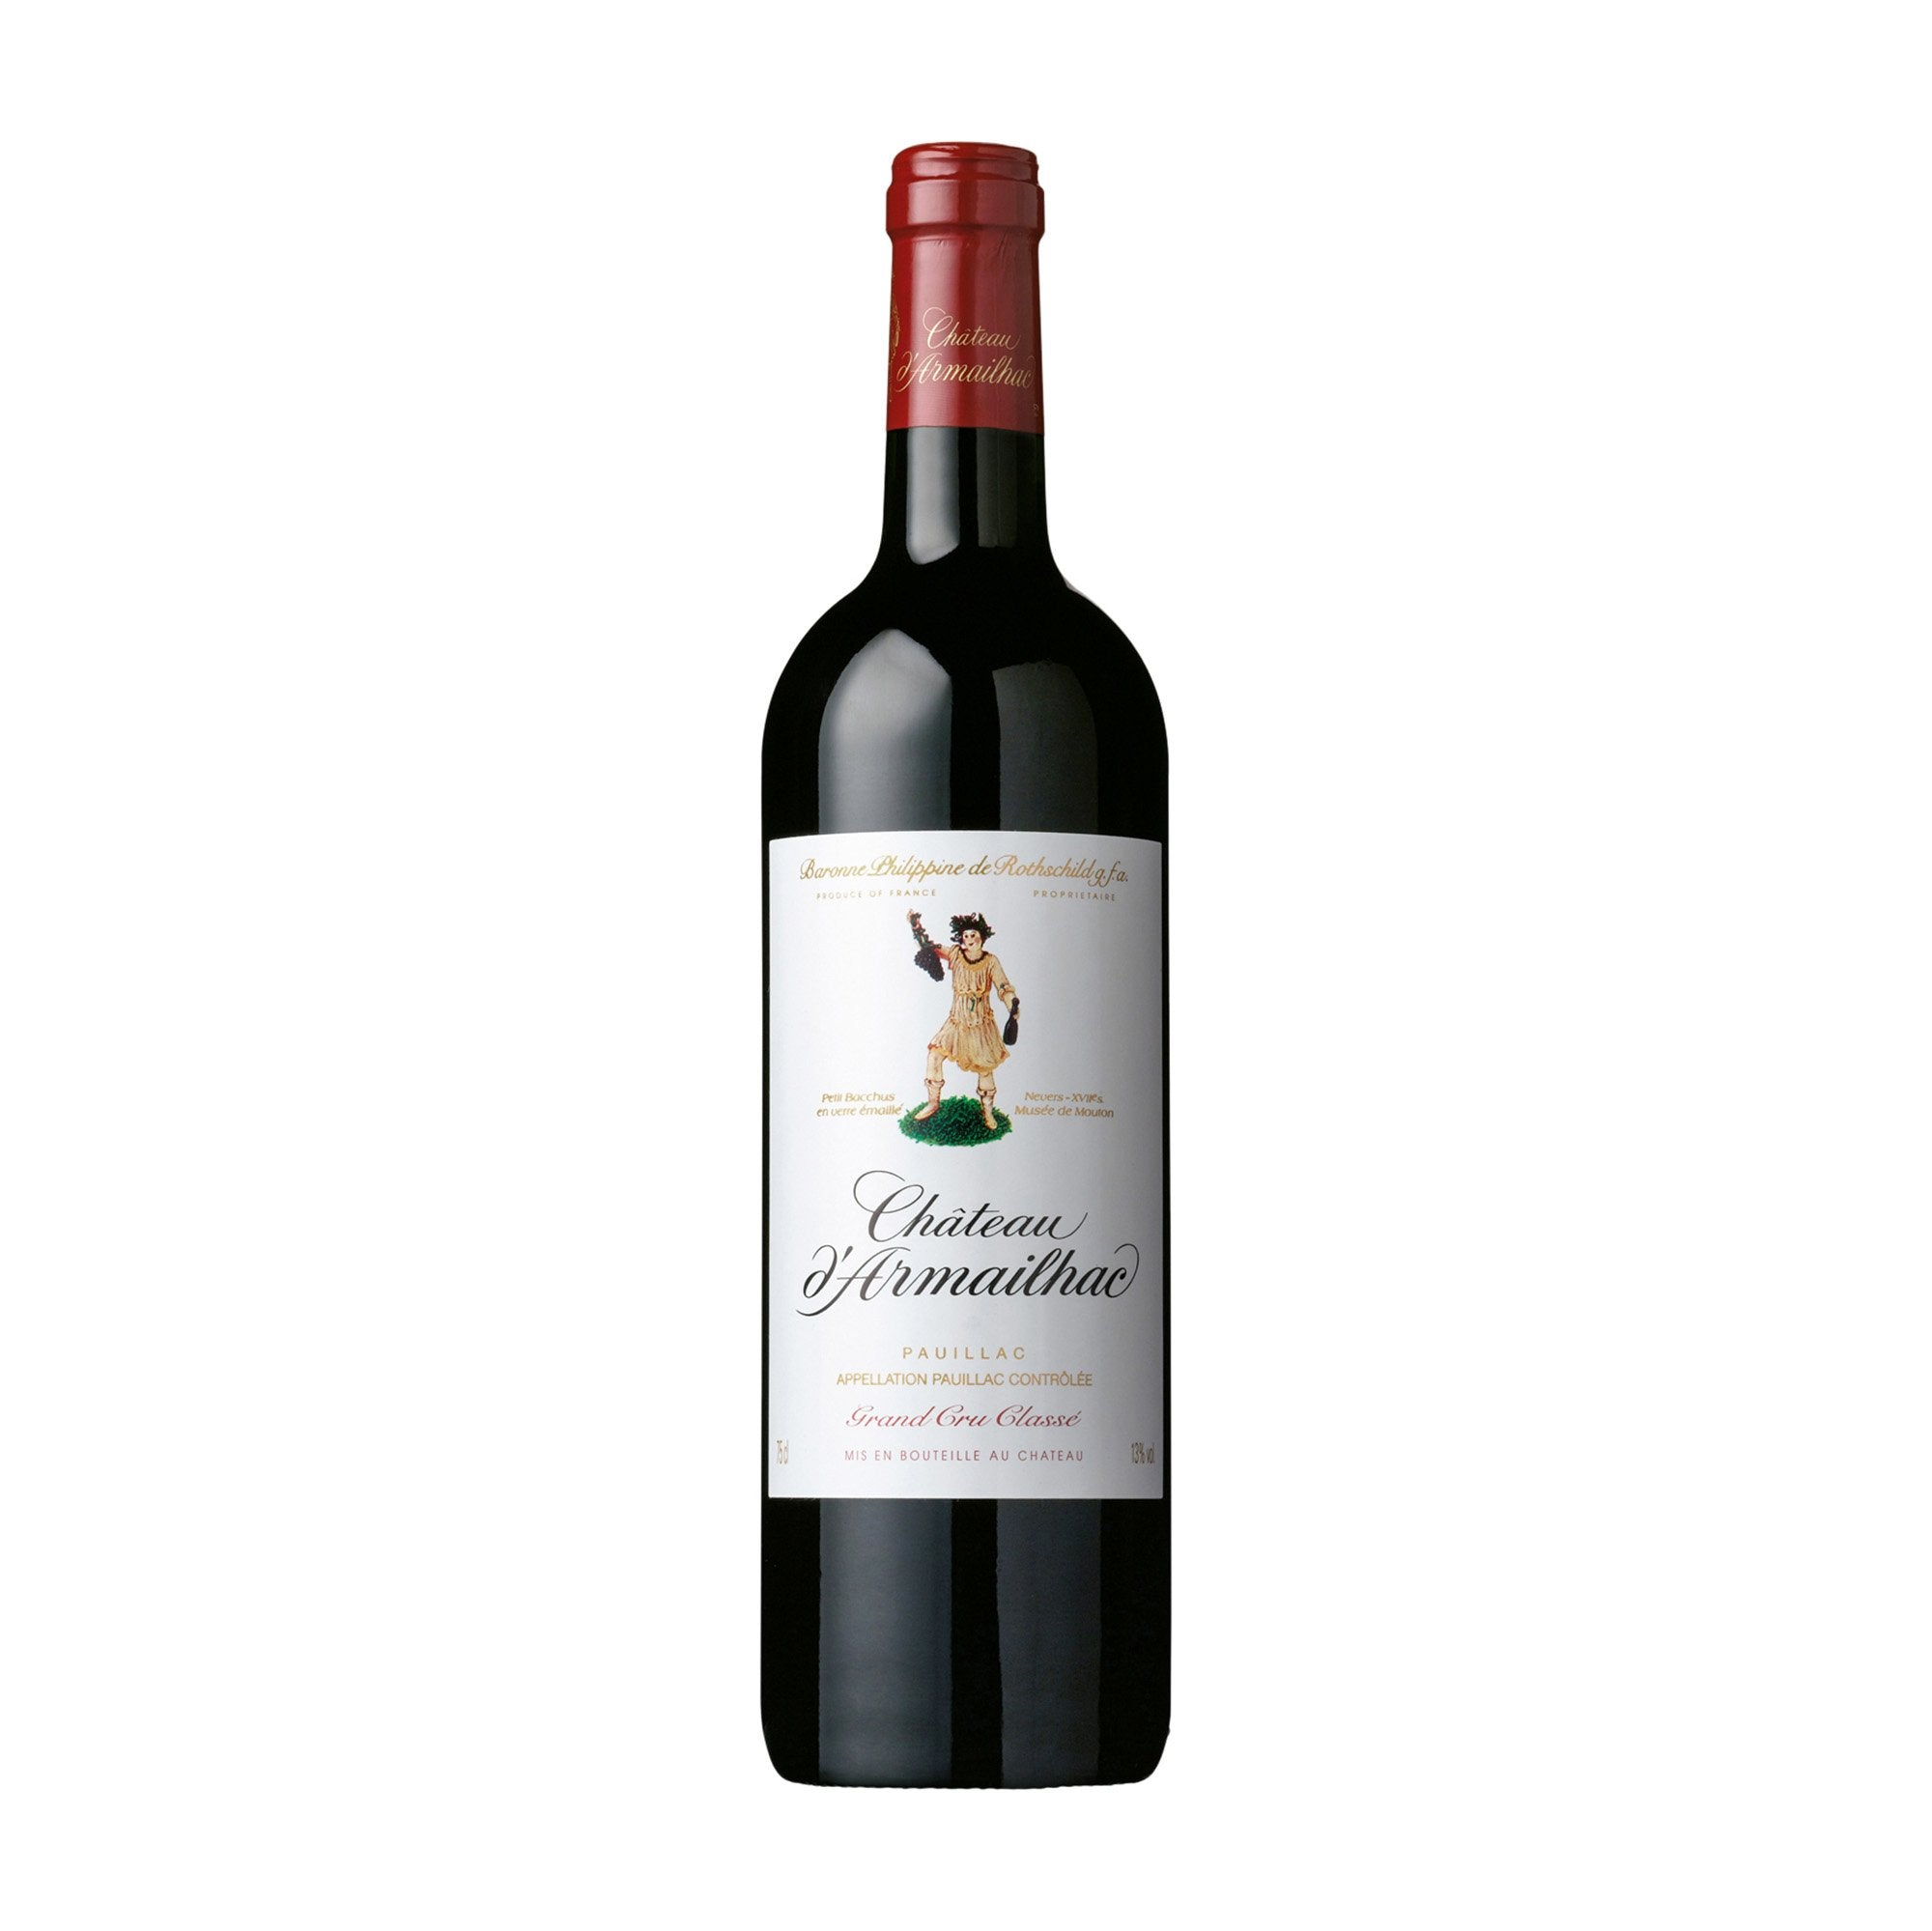 Red Wine Chateau D'Armailhac 2009 (4483466133527)